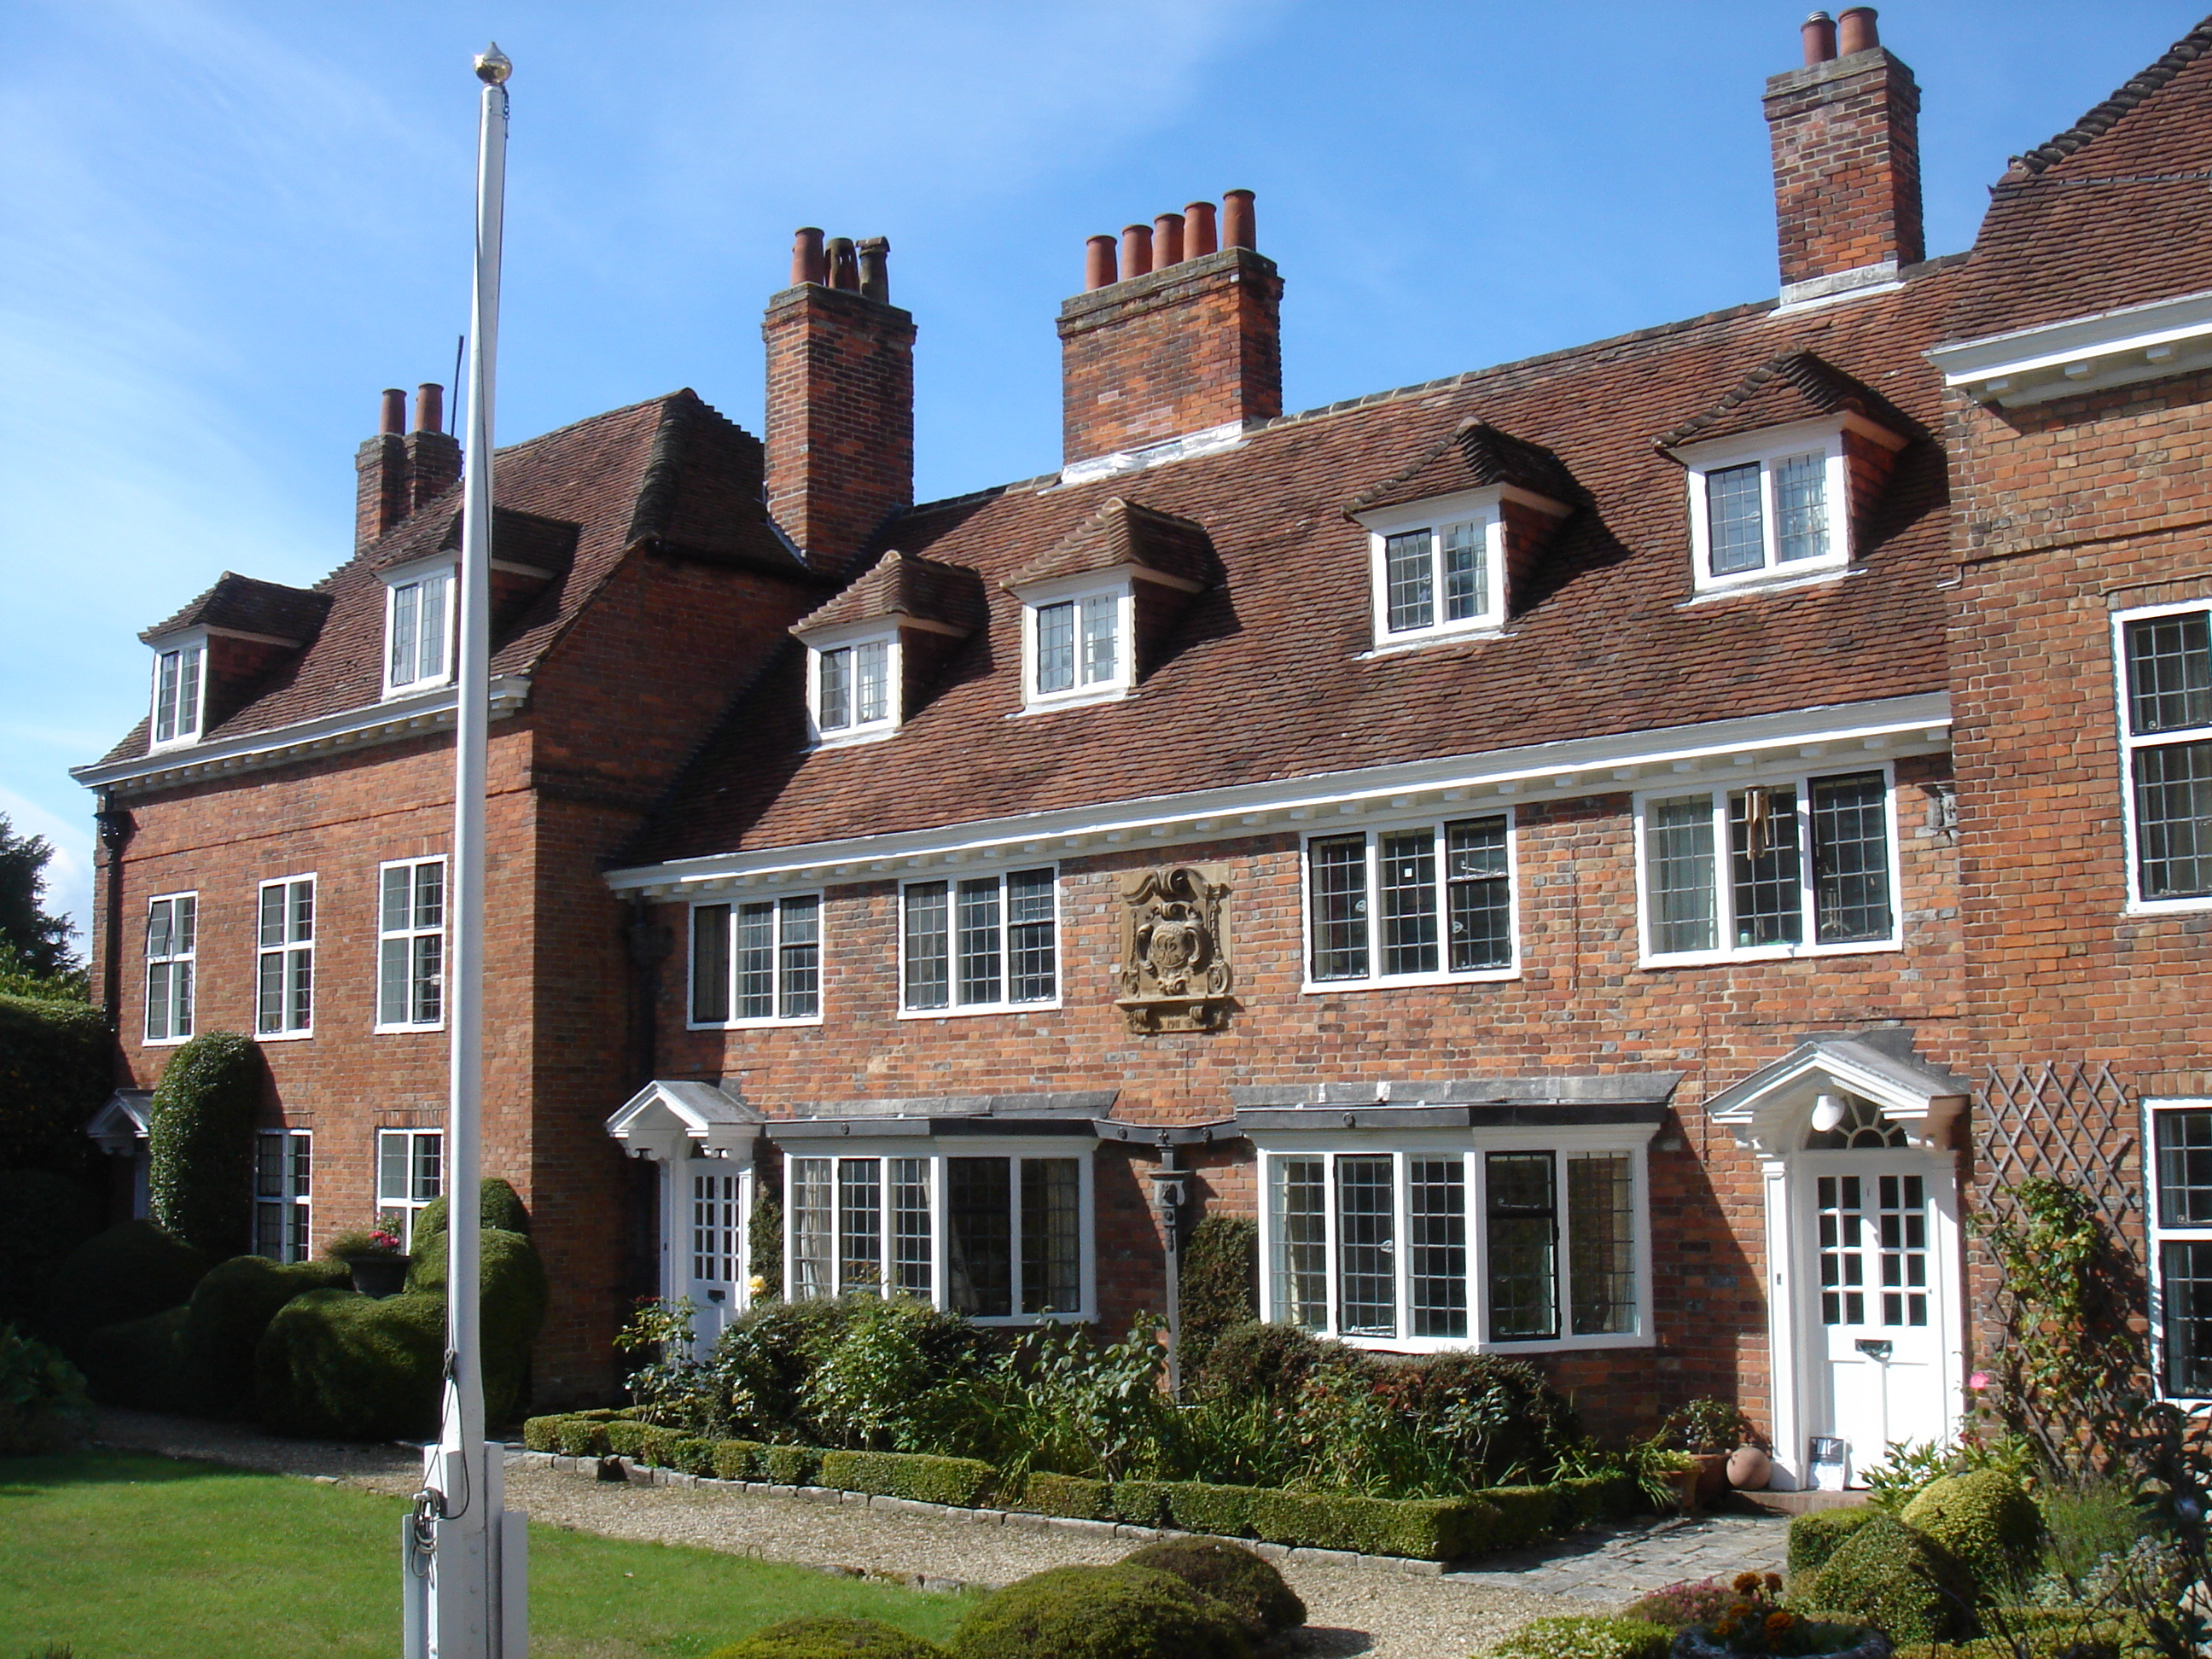 File:Lymington where is the flag ^^ very nice houses - panoramio.jpg ...